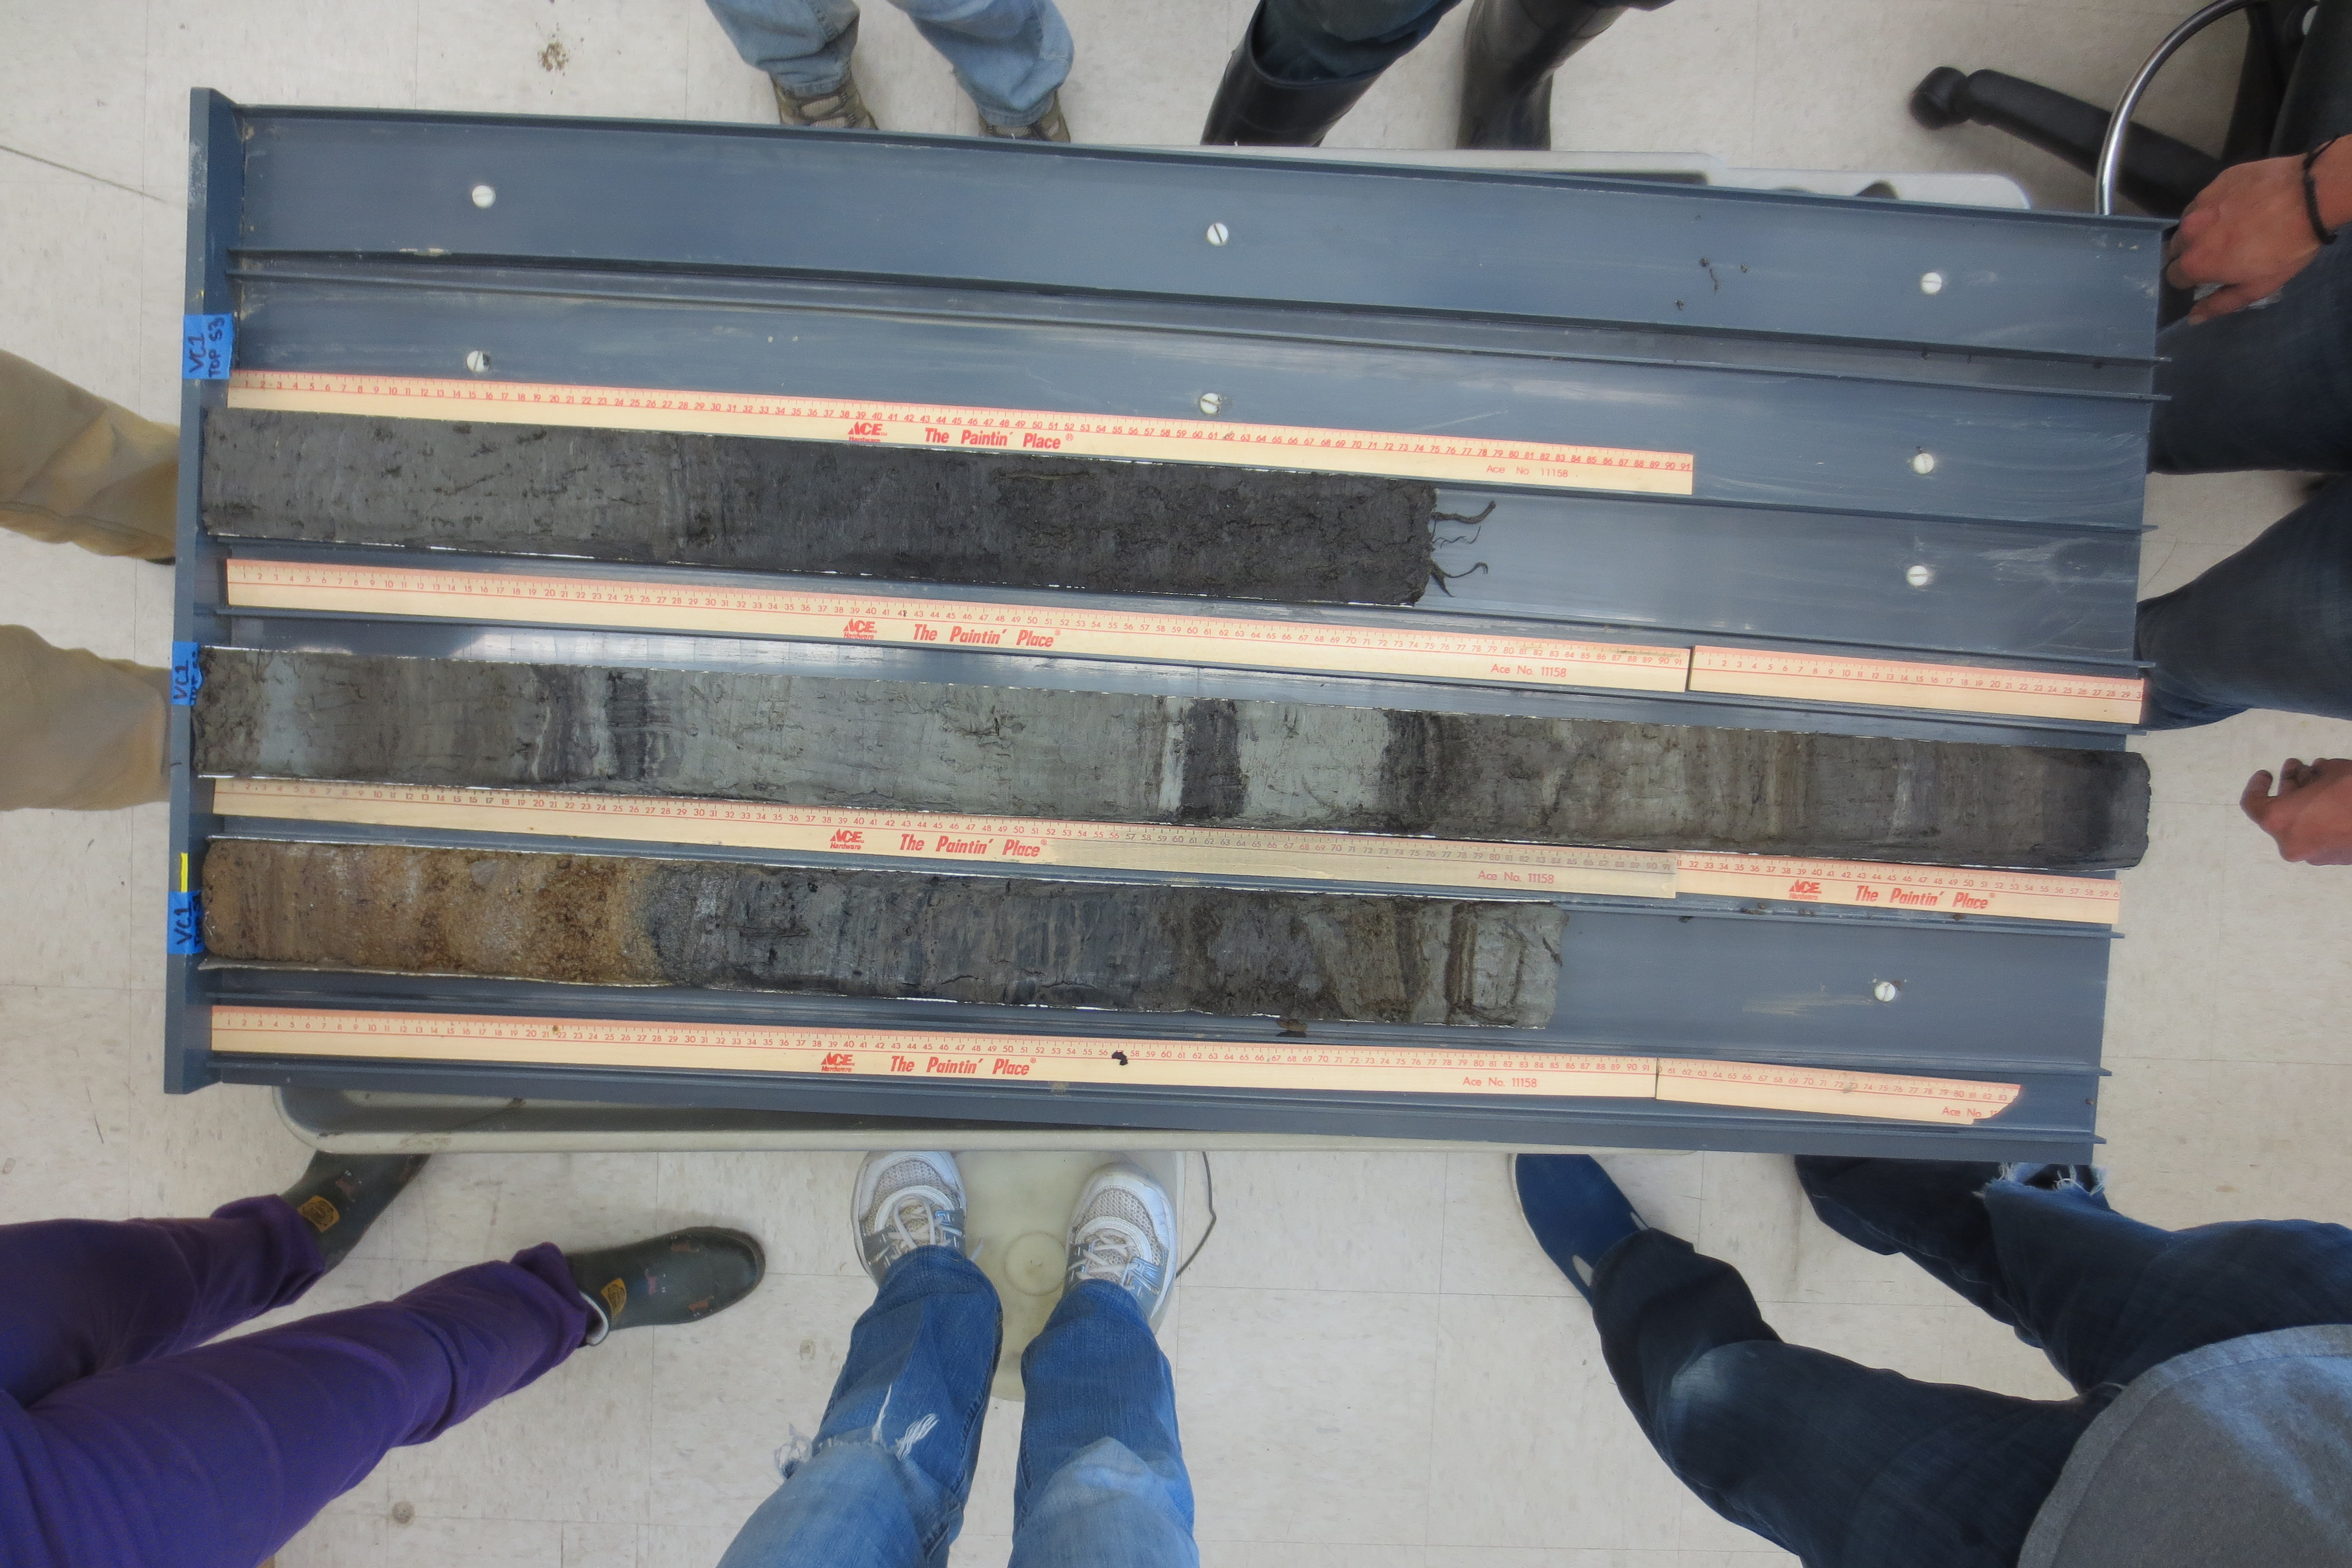 One of the cores from Pescadero Point after it has been sliced and sectioned for analysis. Photo by: Christina Volpi.